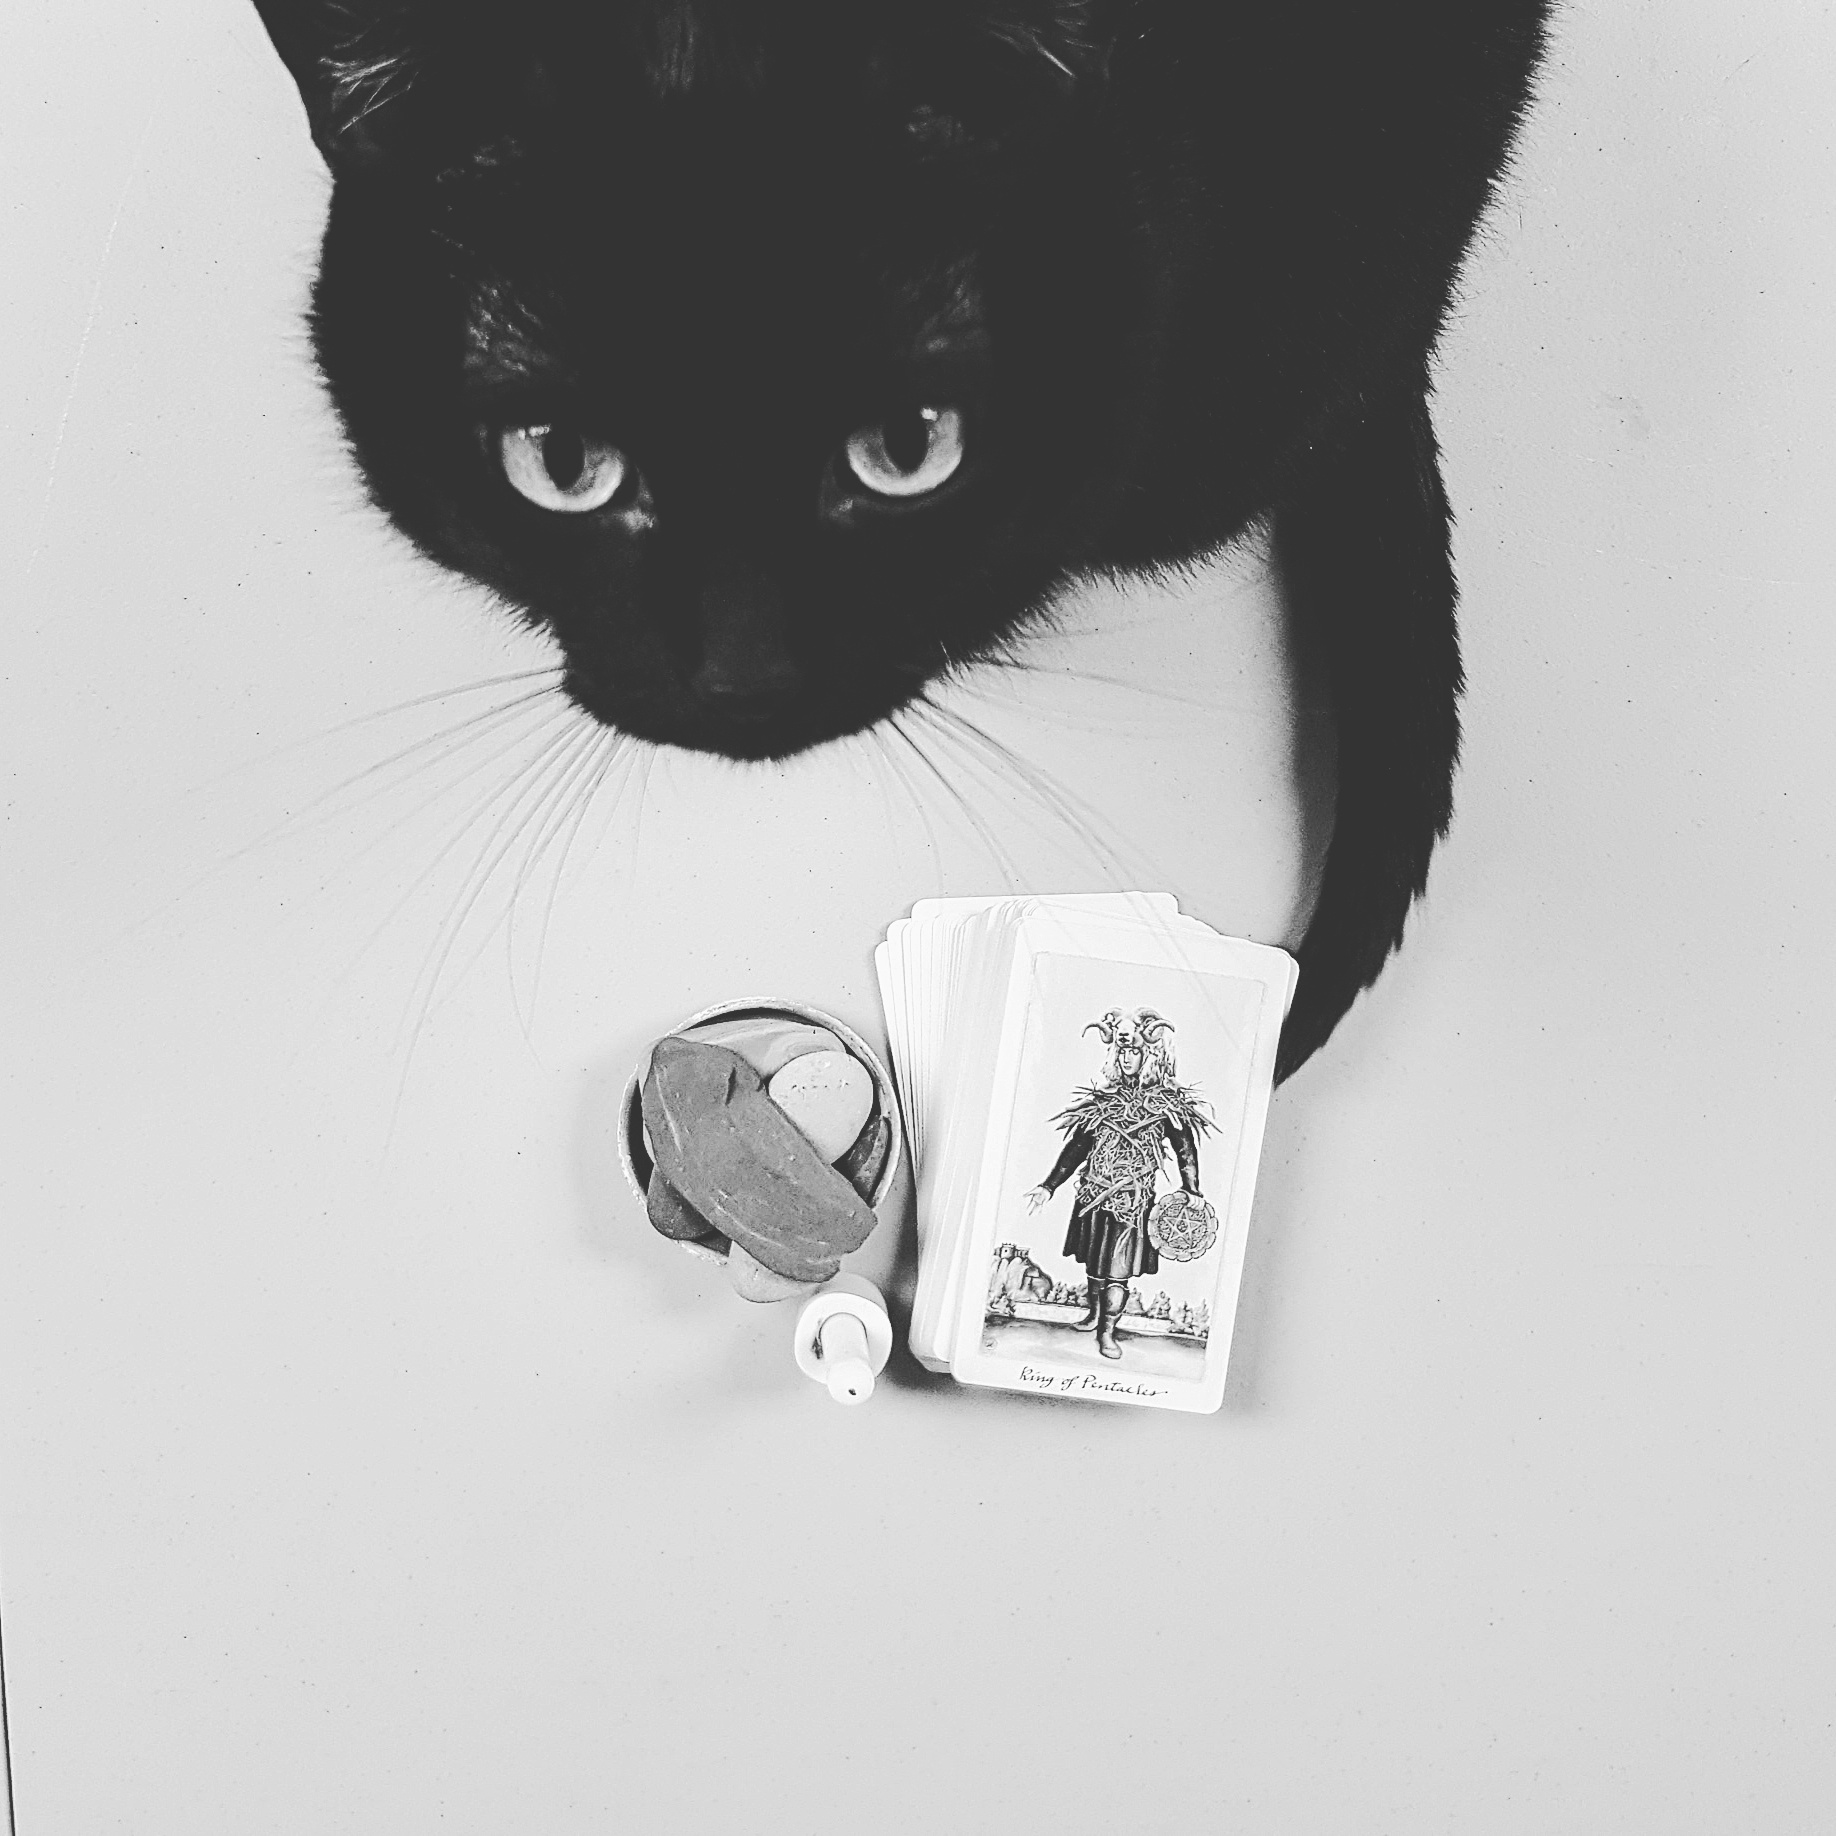 Charlotte, a black cat with very tiny white markings on her back toes, and a spot of white on her chest and belly, is seen here staring straight up into the camera while she sits in front of tarot cards, a candle, and a rock pile.